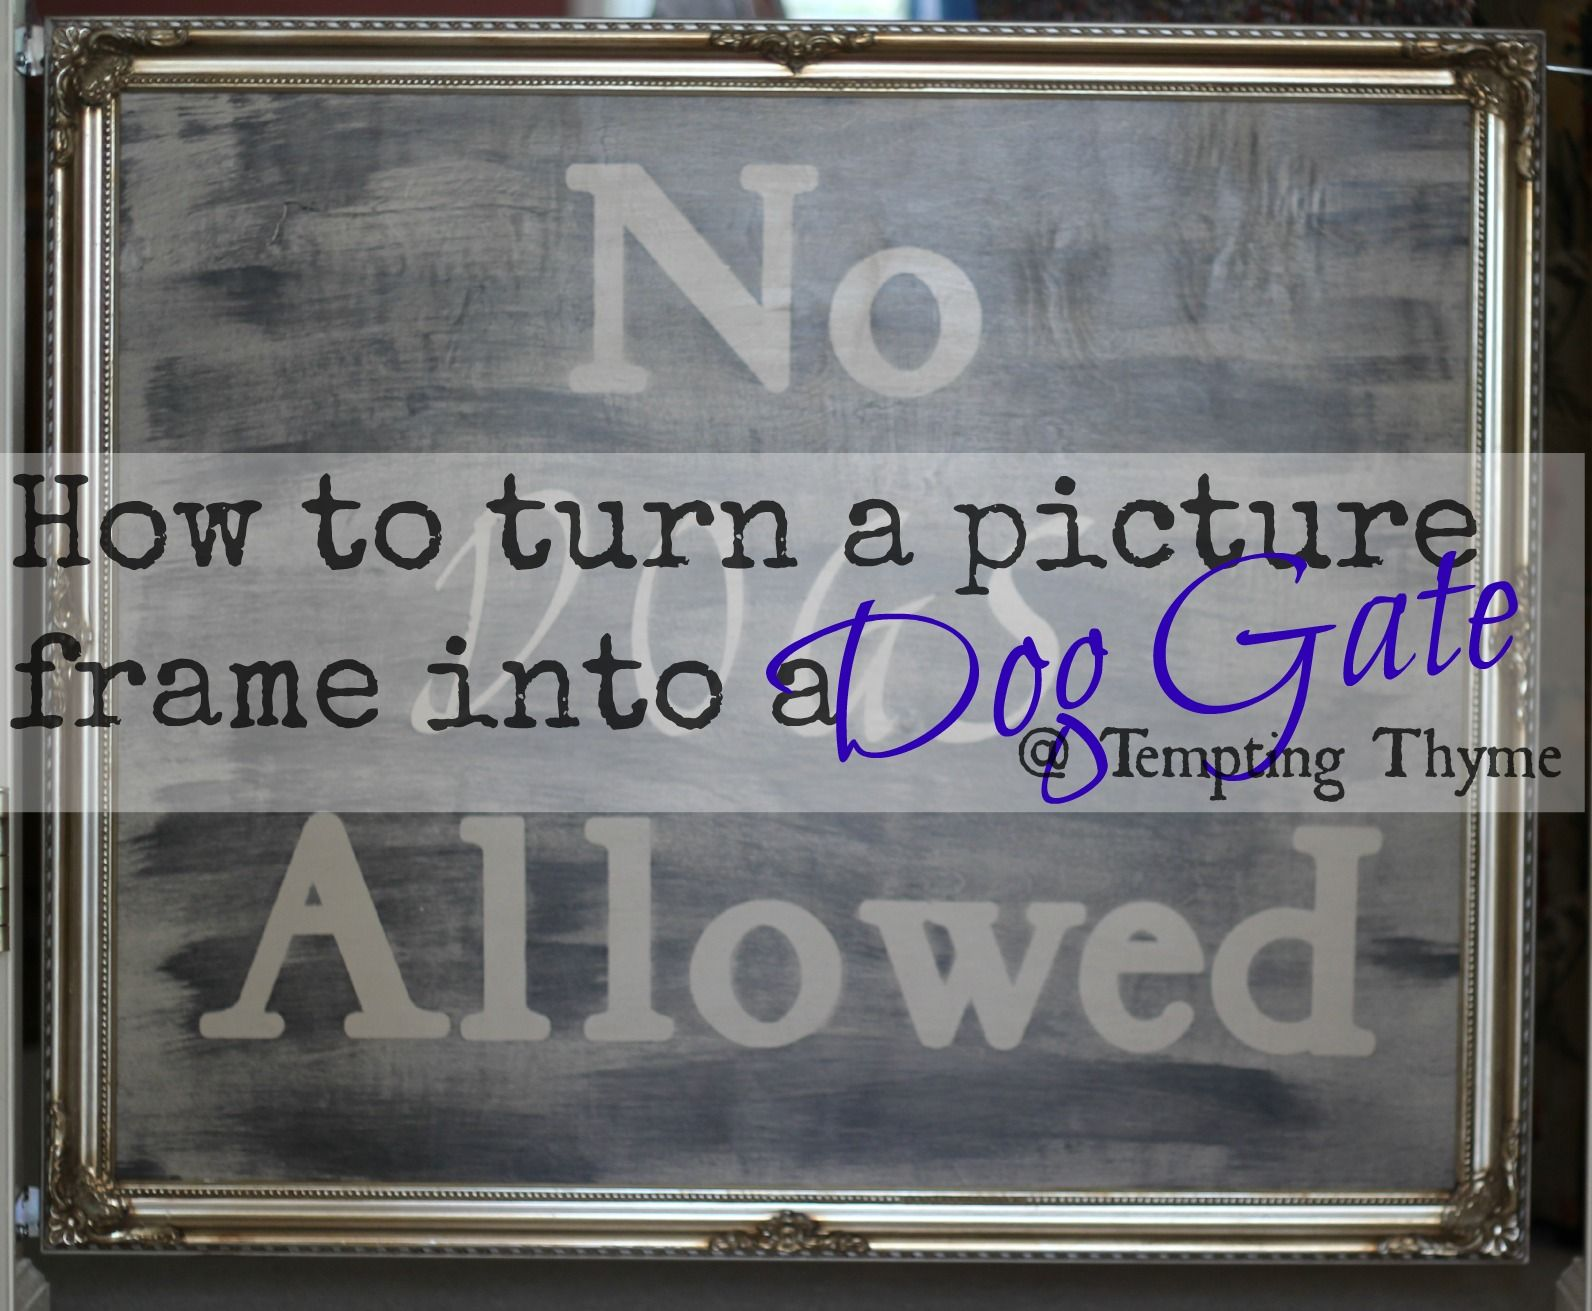 Adorable Diy Dog Gate To Keep Your Furry Little Friend